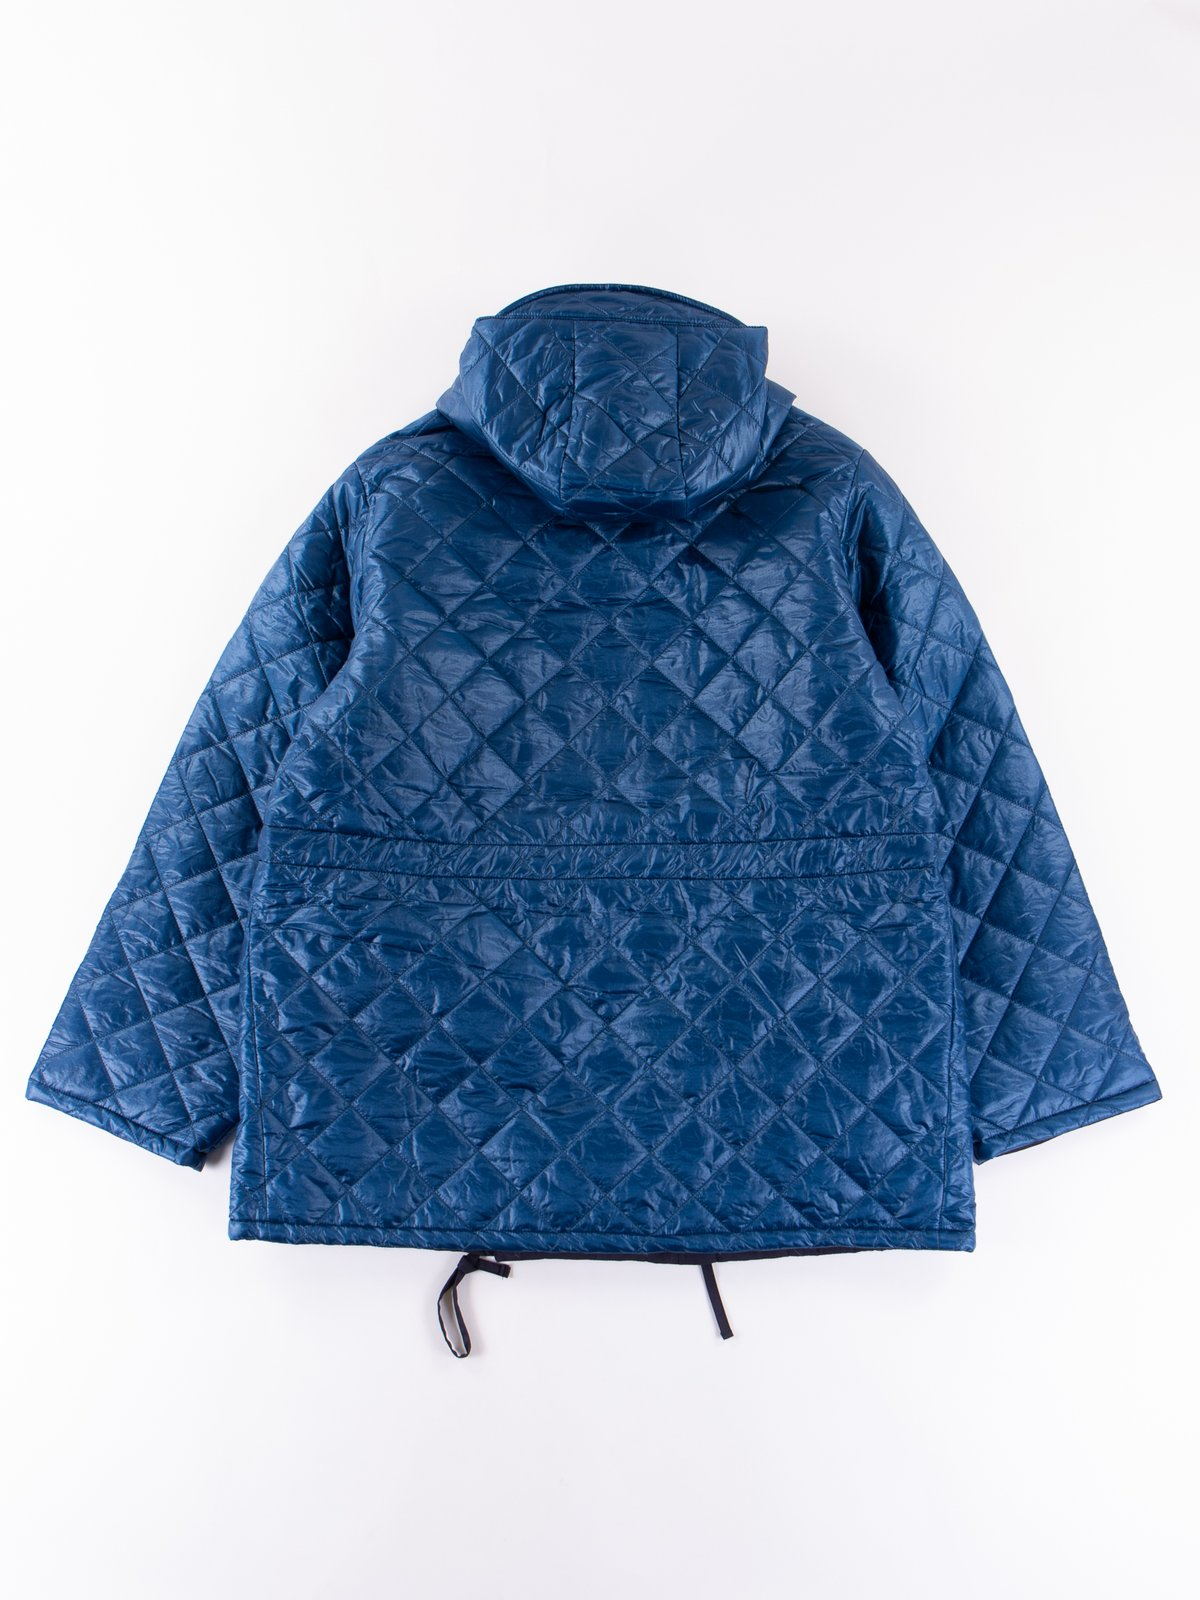 Navy 3oz Zigzag Dotera Fill Hooded Quilted Jacket - Image 6